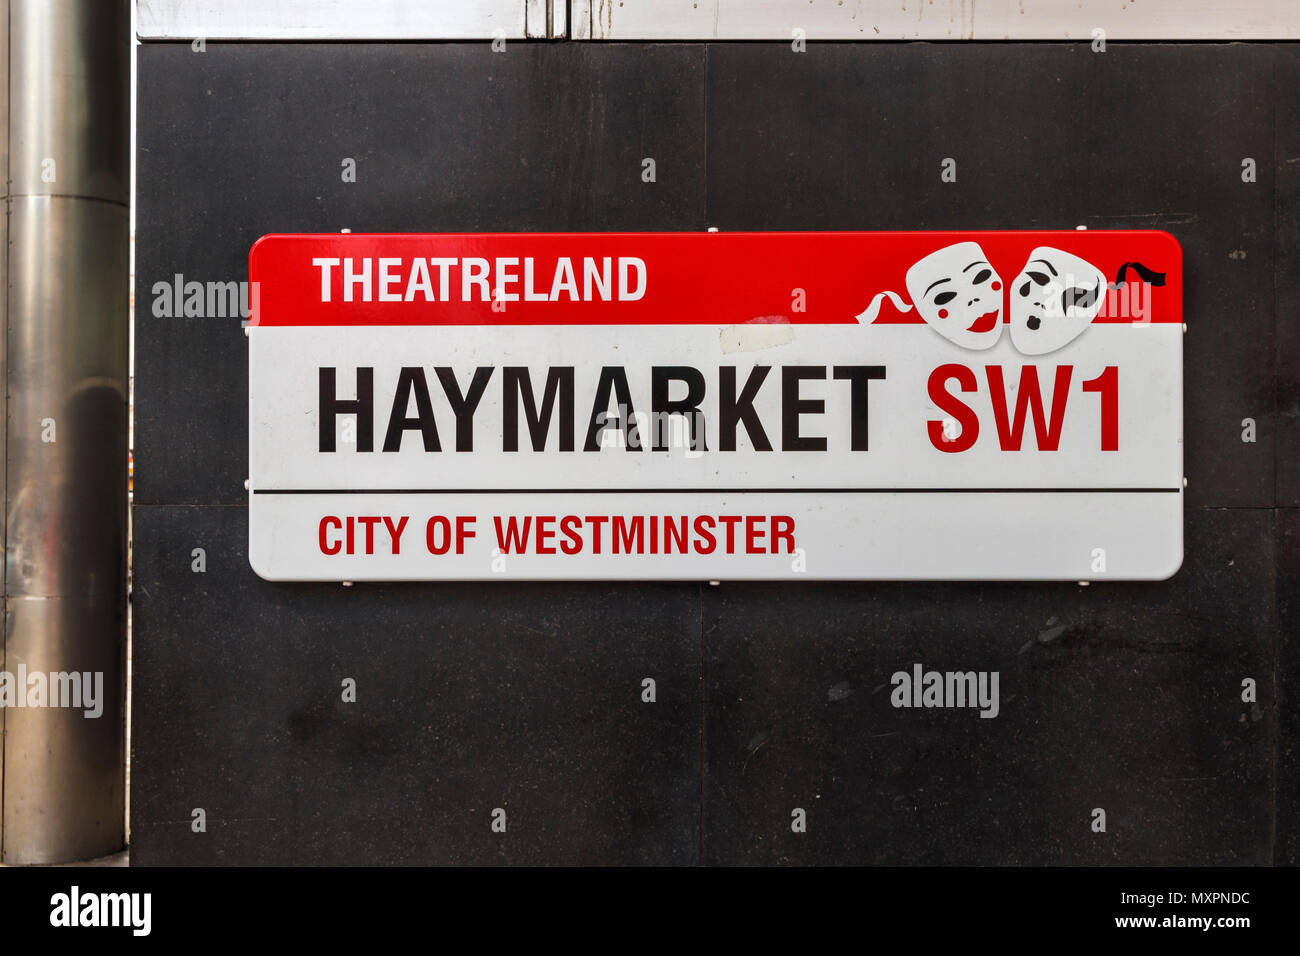 Street sign for Haymarket, a famous road in Theatreland, City of Westminster, London SW1, UK, heart of the cultural entertainment district - Stock Image